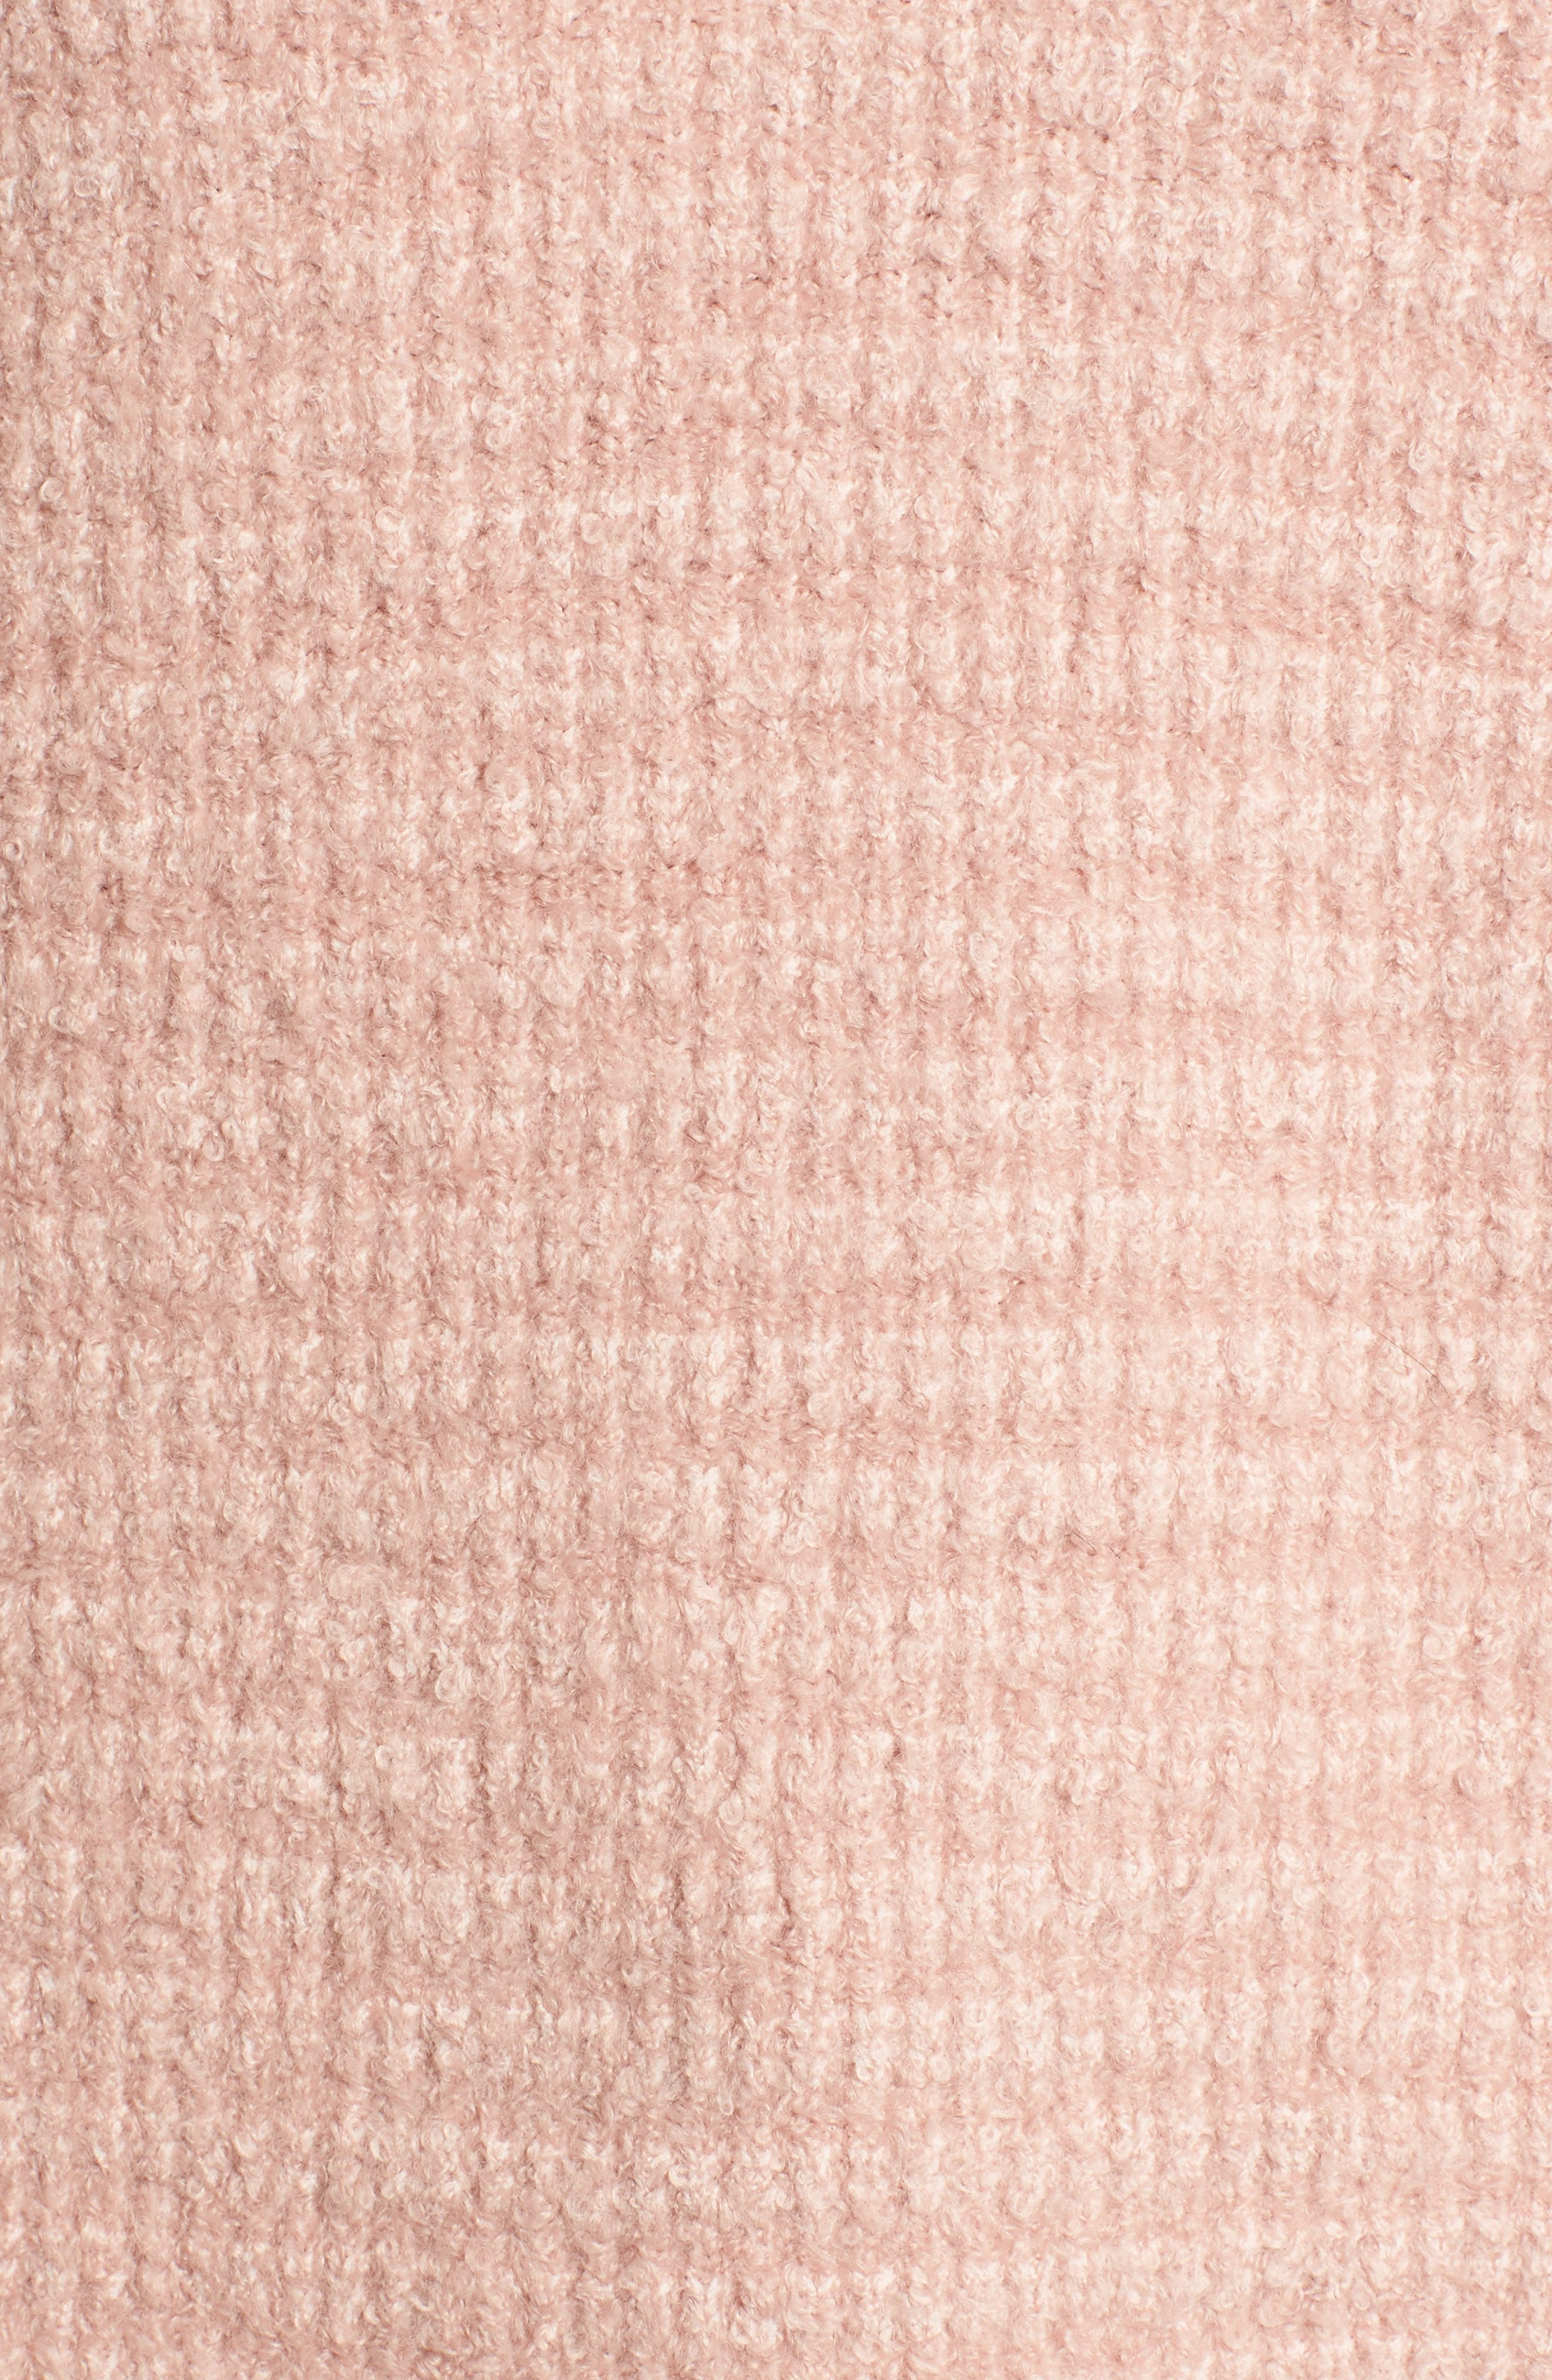 Lace Inset V-Neck Sweater,                             Alternate thumbnail 5, color,                             Pink Adobe